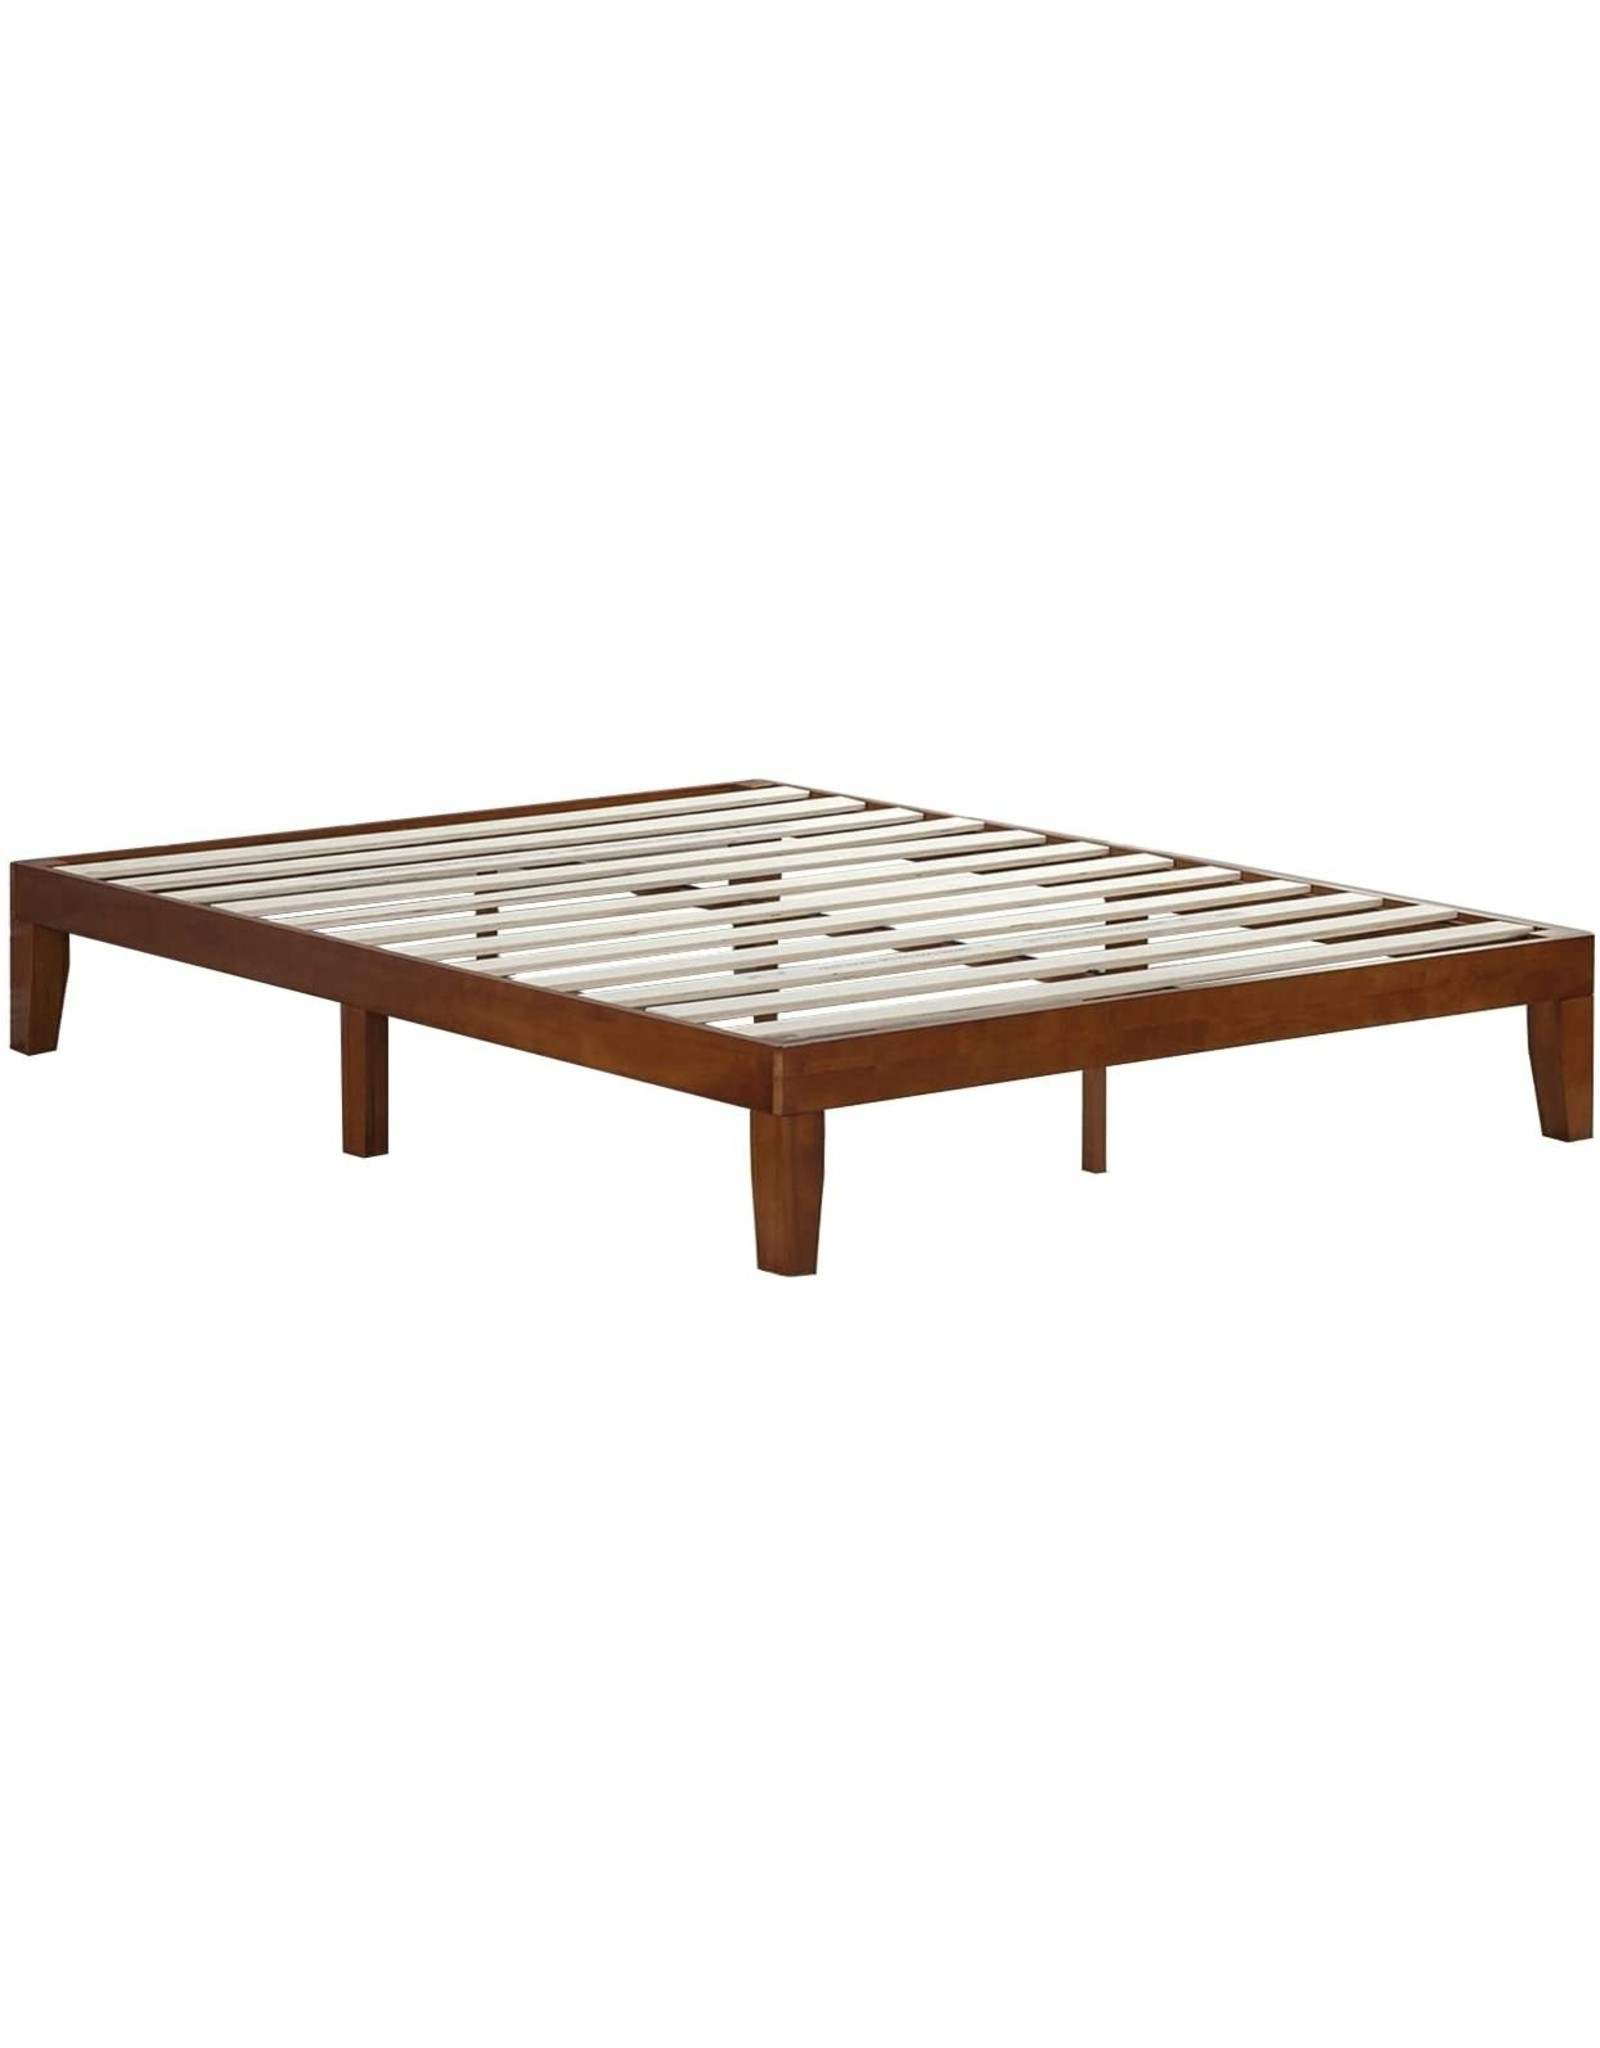 Zinus Wen 12 Inch Wood Platform Bed Frame Solid Wood Mattress Foundation With Wood Slat Support No Box Spring Needed Easy Assembly Queen Abusa Buffalo